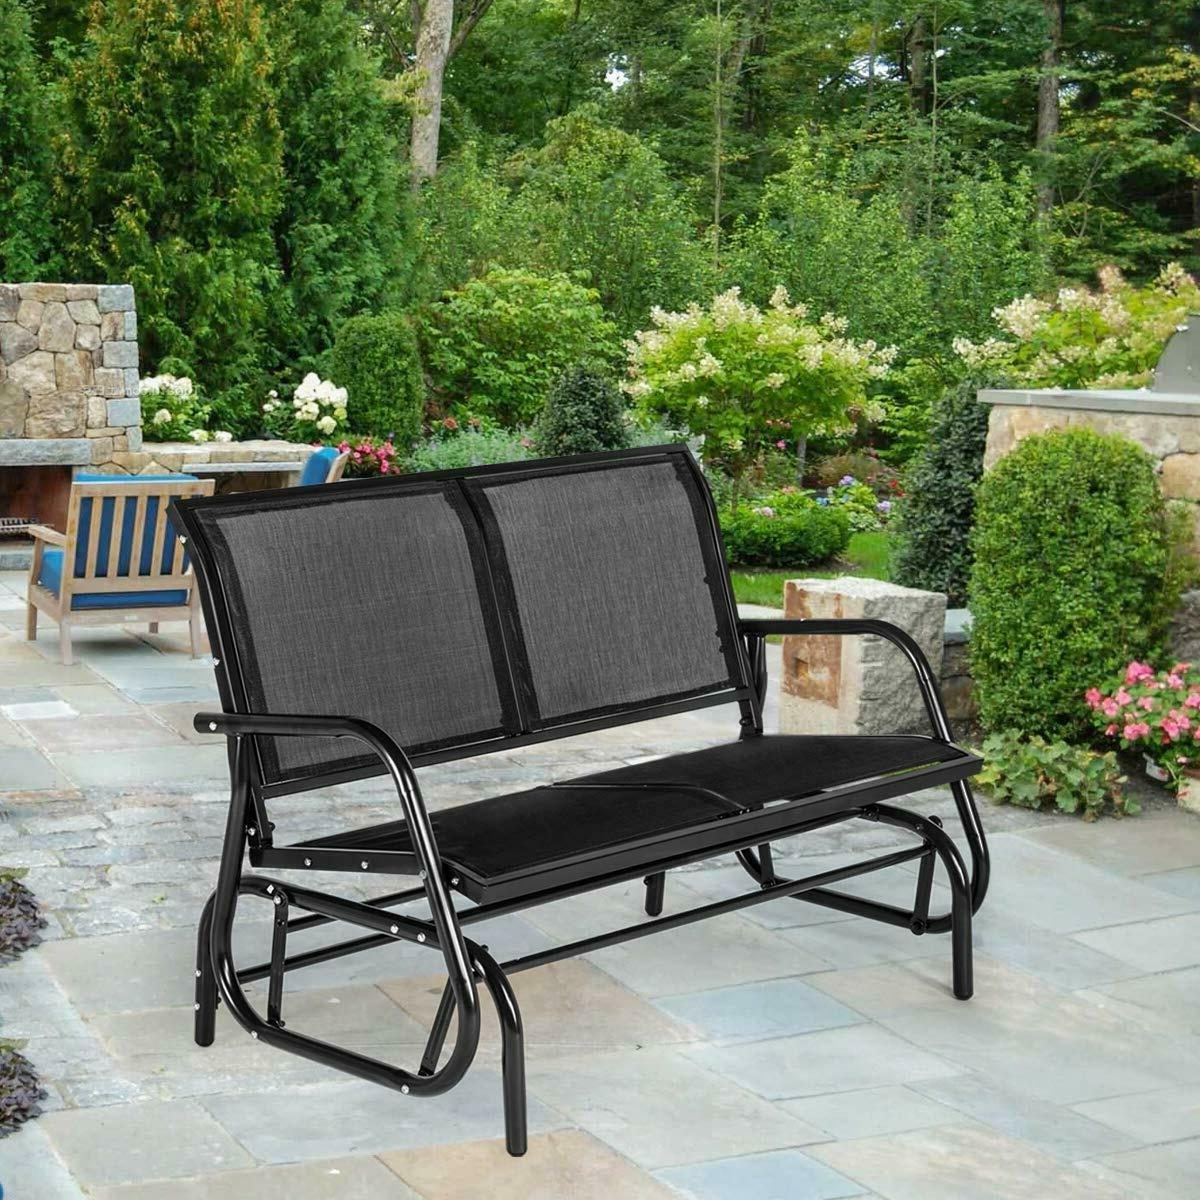 patio double glider loveseat swing rocking bench